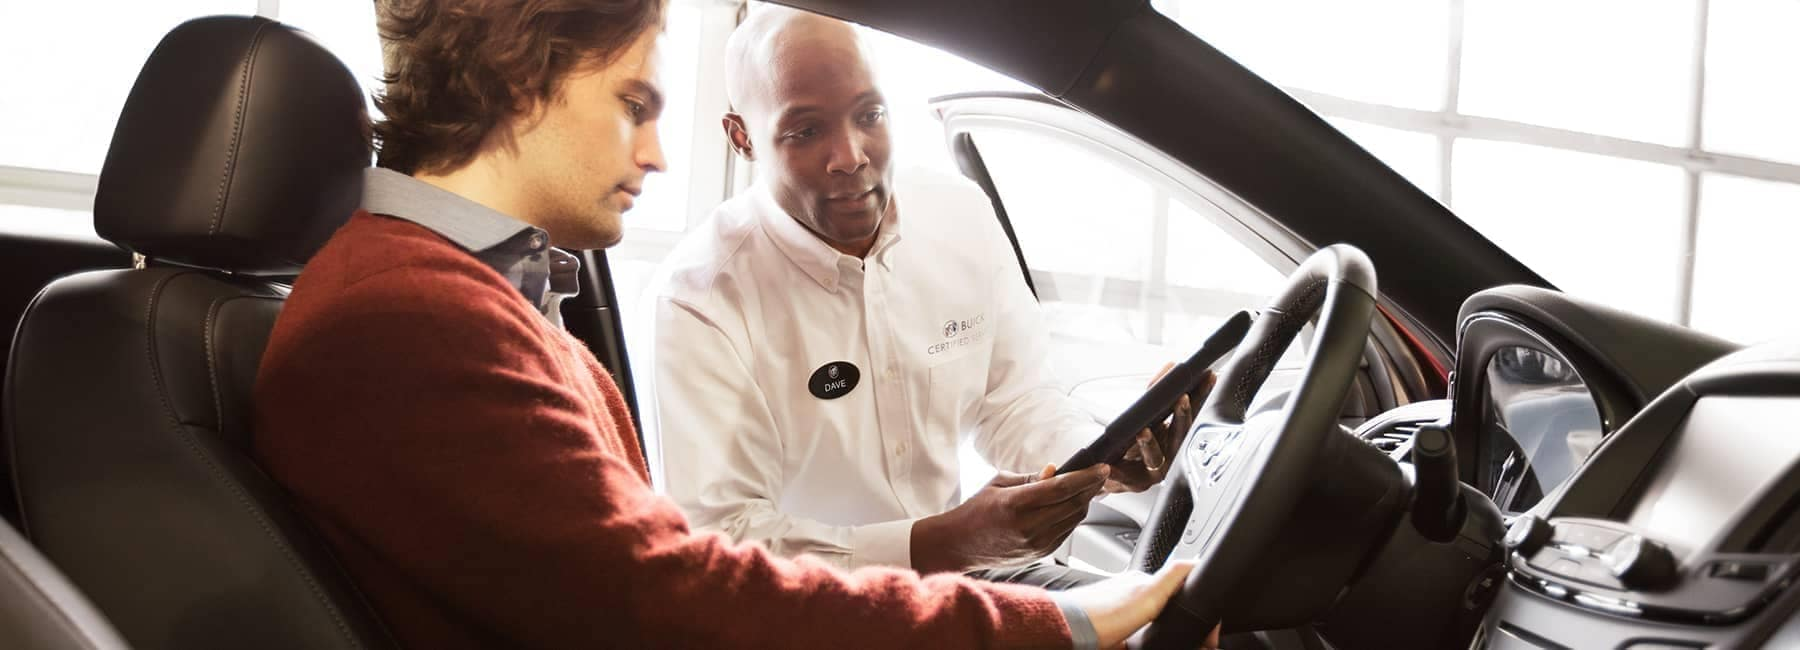 Buick Service technician advises new owner